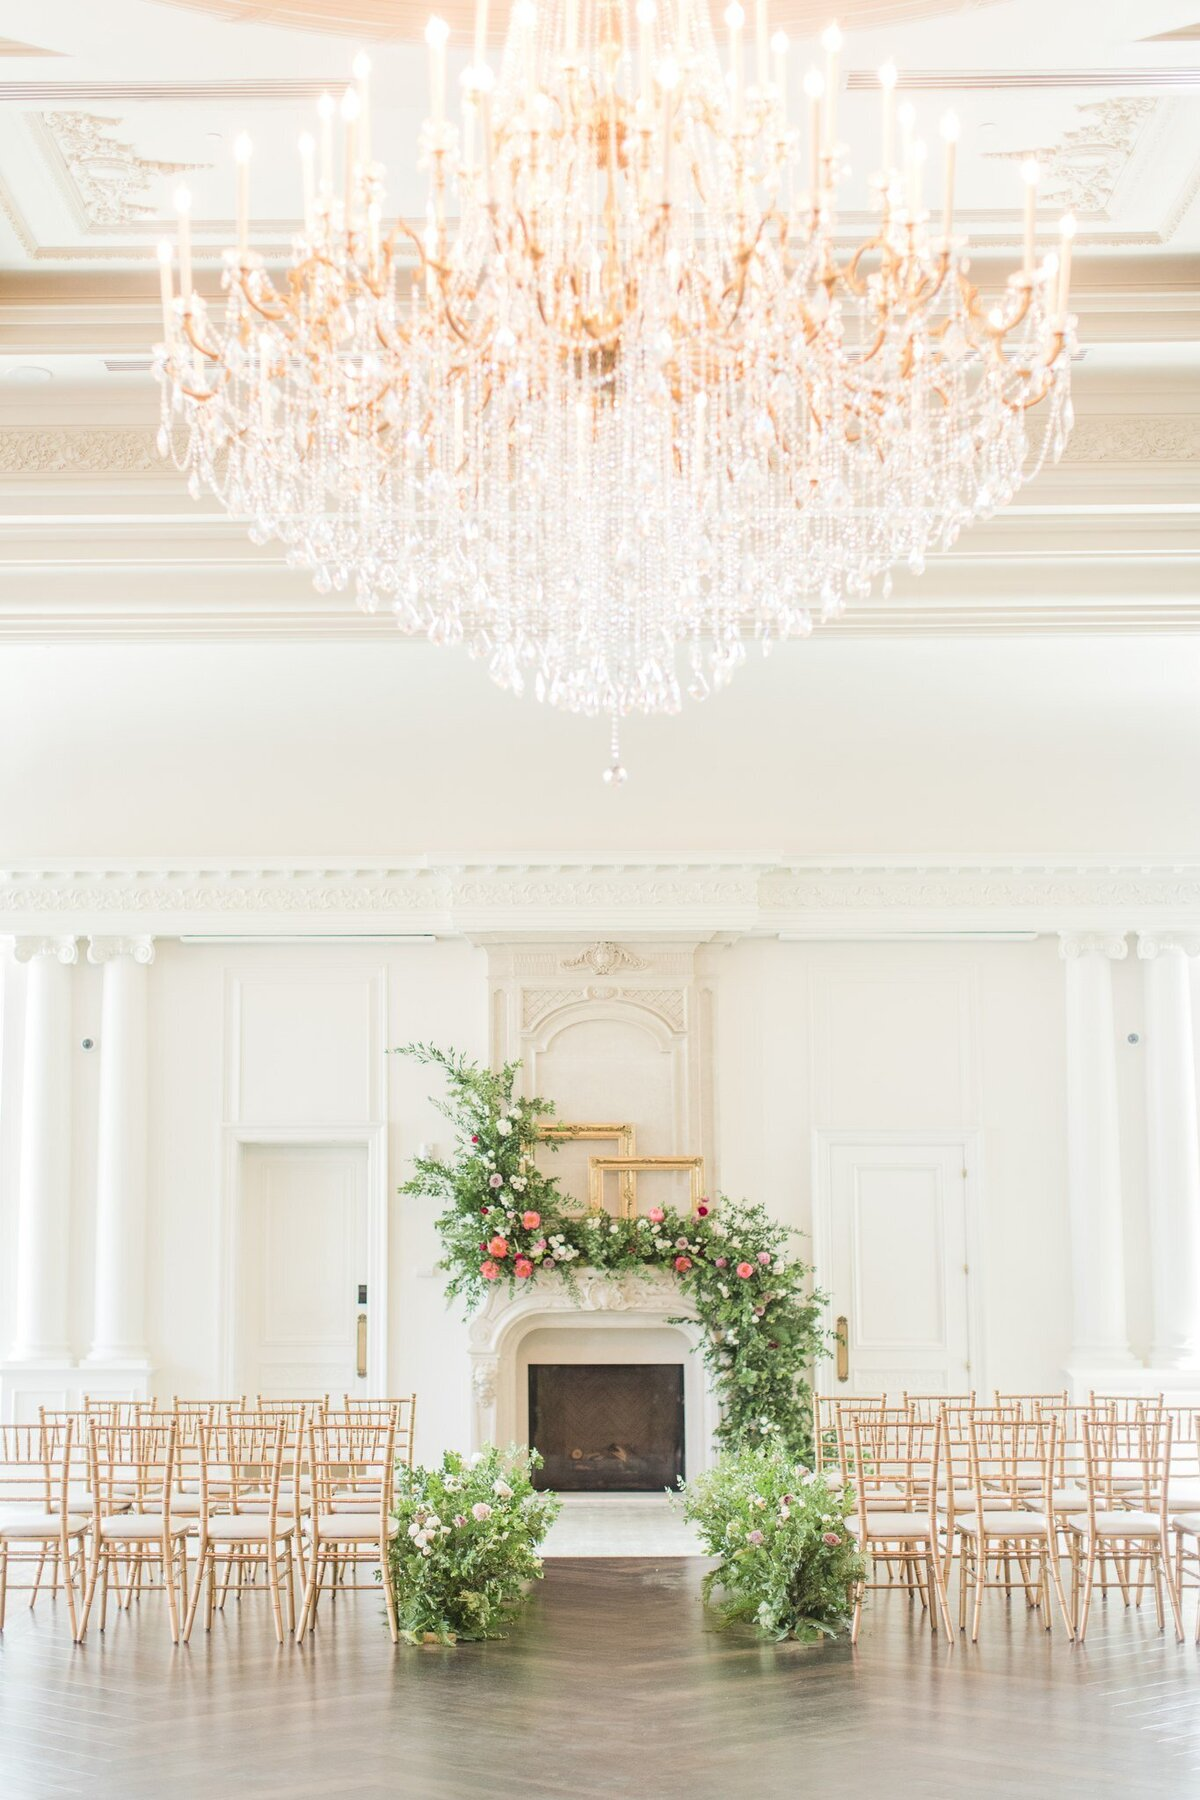 Mauve_Inspired_Wedding_Palette_inside_the_Ballroom_at_the_Park_Chateau_Estate_and_Gardens_in_East_Brunswick-49